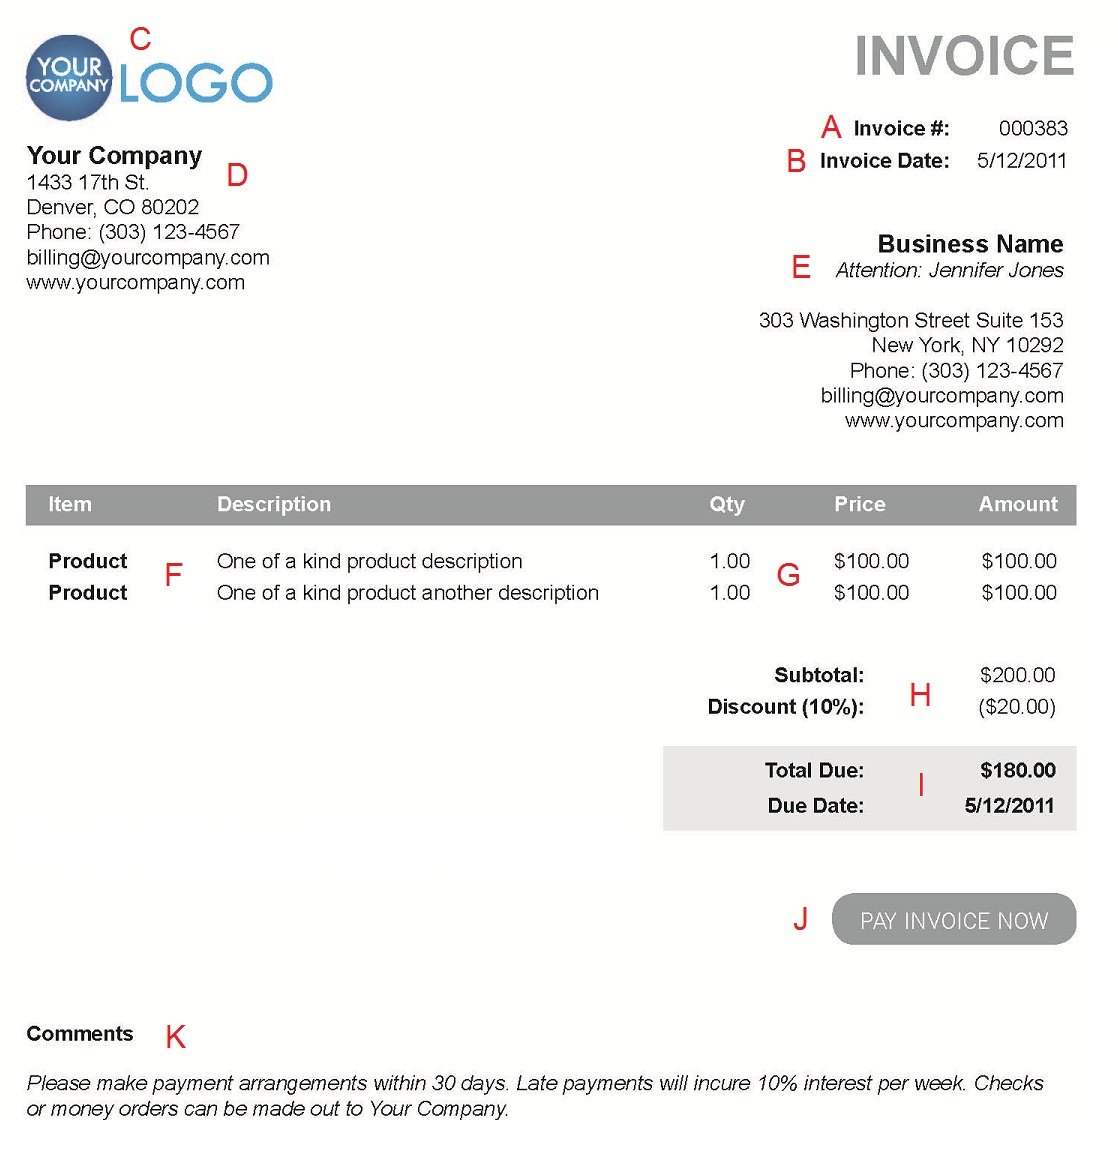 Gpwaus  Wonderful The  Different Sections Of An Electronic Payment Invoice With Hot A  With Captivating My Invoices Software Also Free Download Invoice In Addition What Is Invoice Pricing And Free Invoice And Estimate Software As Well As  Honda Accord Invoice Additionally Ford F Invoice From Paysimplecom With Gpwaus  Hot The  Different Sections Of An Electronic Payment Invoice With Captivating A  And Wonderful My Invoices Software Also Free Download Invoice In Addition What Is Invoice Pricing From Paysimplecom